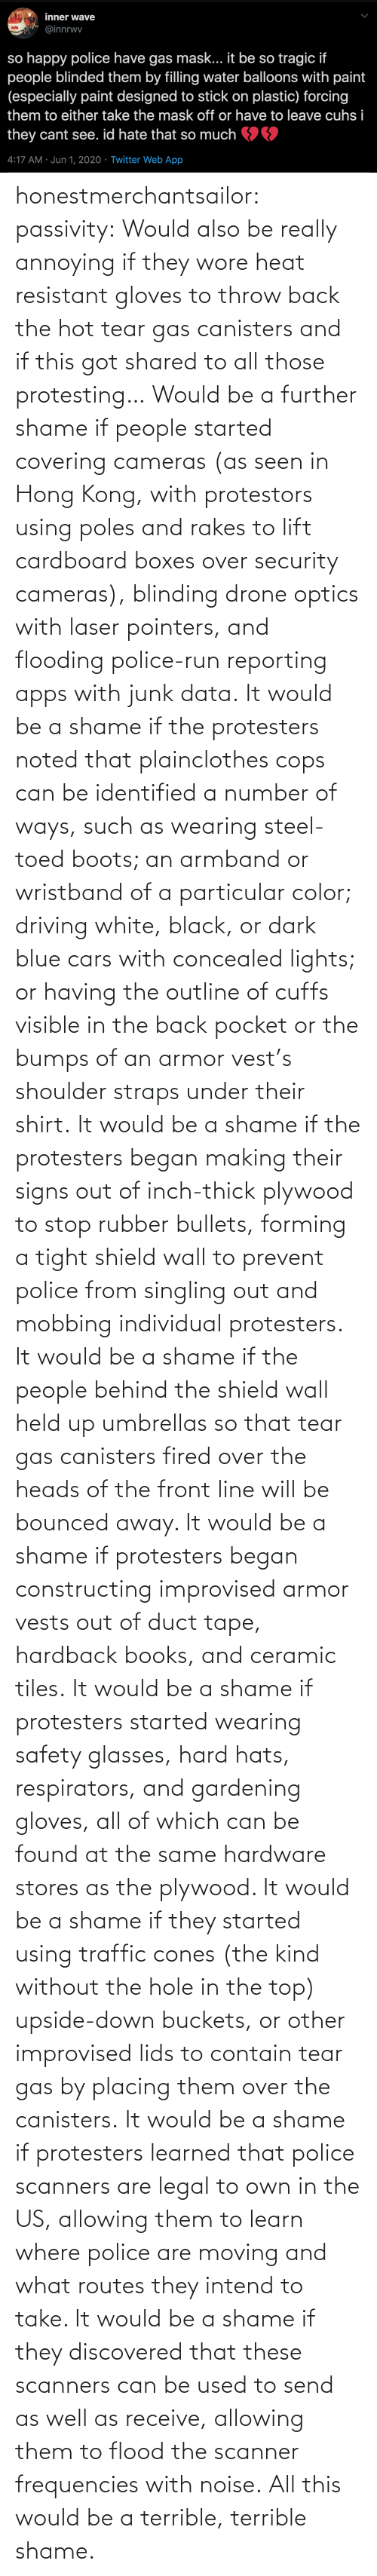 Apps: honestmerchantsailor: passivity: Would also be really annoying if they wore heat resistant gloves to throw back the hot tear gas canisters and if this got shared to all those protesting… Would be a further shame if people started covering cameras (as seen in Hong Kong, with protestors using poles and rakes to lift cardboard boxes over security cameras), blinding drone optics with laser pointers, and flooding police-run reporting apps with junk data. It would be a shame if the protesters noted that plainclothes cops can be identified a number of ways, such as wearing steel-toed boots; an armband or wristband of a particular color; driving white, black, or dark blue cars with concealed lights; or having the outline of cuffs visible in the back pocket or the bumps of an armor vest's shoulder straps under their shirt. It would be a shame if the protesters began making their signs out of inch-thick plywood to stop rubber bullets, forming a tight shield wall to prevent police from singling out and mobbing individual protesters. It would be a shame if the people behind the shield wall held up umbrellas so that tear gas canisters fired over the heads of the front line will be bounced away. It would be a shame if protesters began constructing improvised armor vests out of duct tape, hardback books, and ceramic tiles. It would be a shame if protesters started wearing safety glasses, hard hats, respirators, and gardening gloves, all of which can be found at the same hardware stores as the plywood. It would be a shame if they started using traffic cones (the kind without the hole in the top) upside-down buckets, or other improvised lids to contain tear gas by placing them over the canisters. It would be a shame if protesters learned that police scanners are legal to own in the US, allowing them to learn where police are moving and what routes they intend to take. It would be a shame if they discovered that these scanners can be used to send as well as receive, allowing them to flood the scanner frequencies with noise. All this would be a terrible, terrible shame.